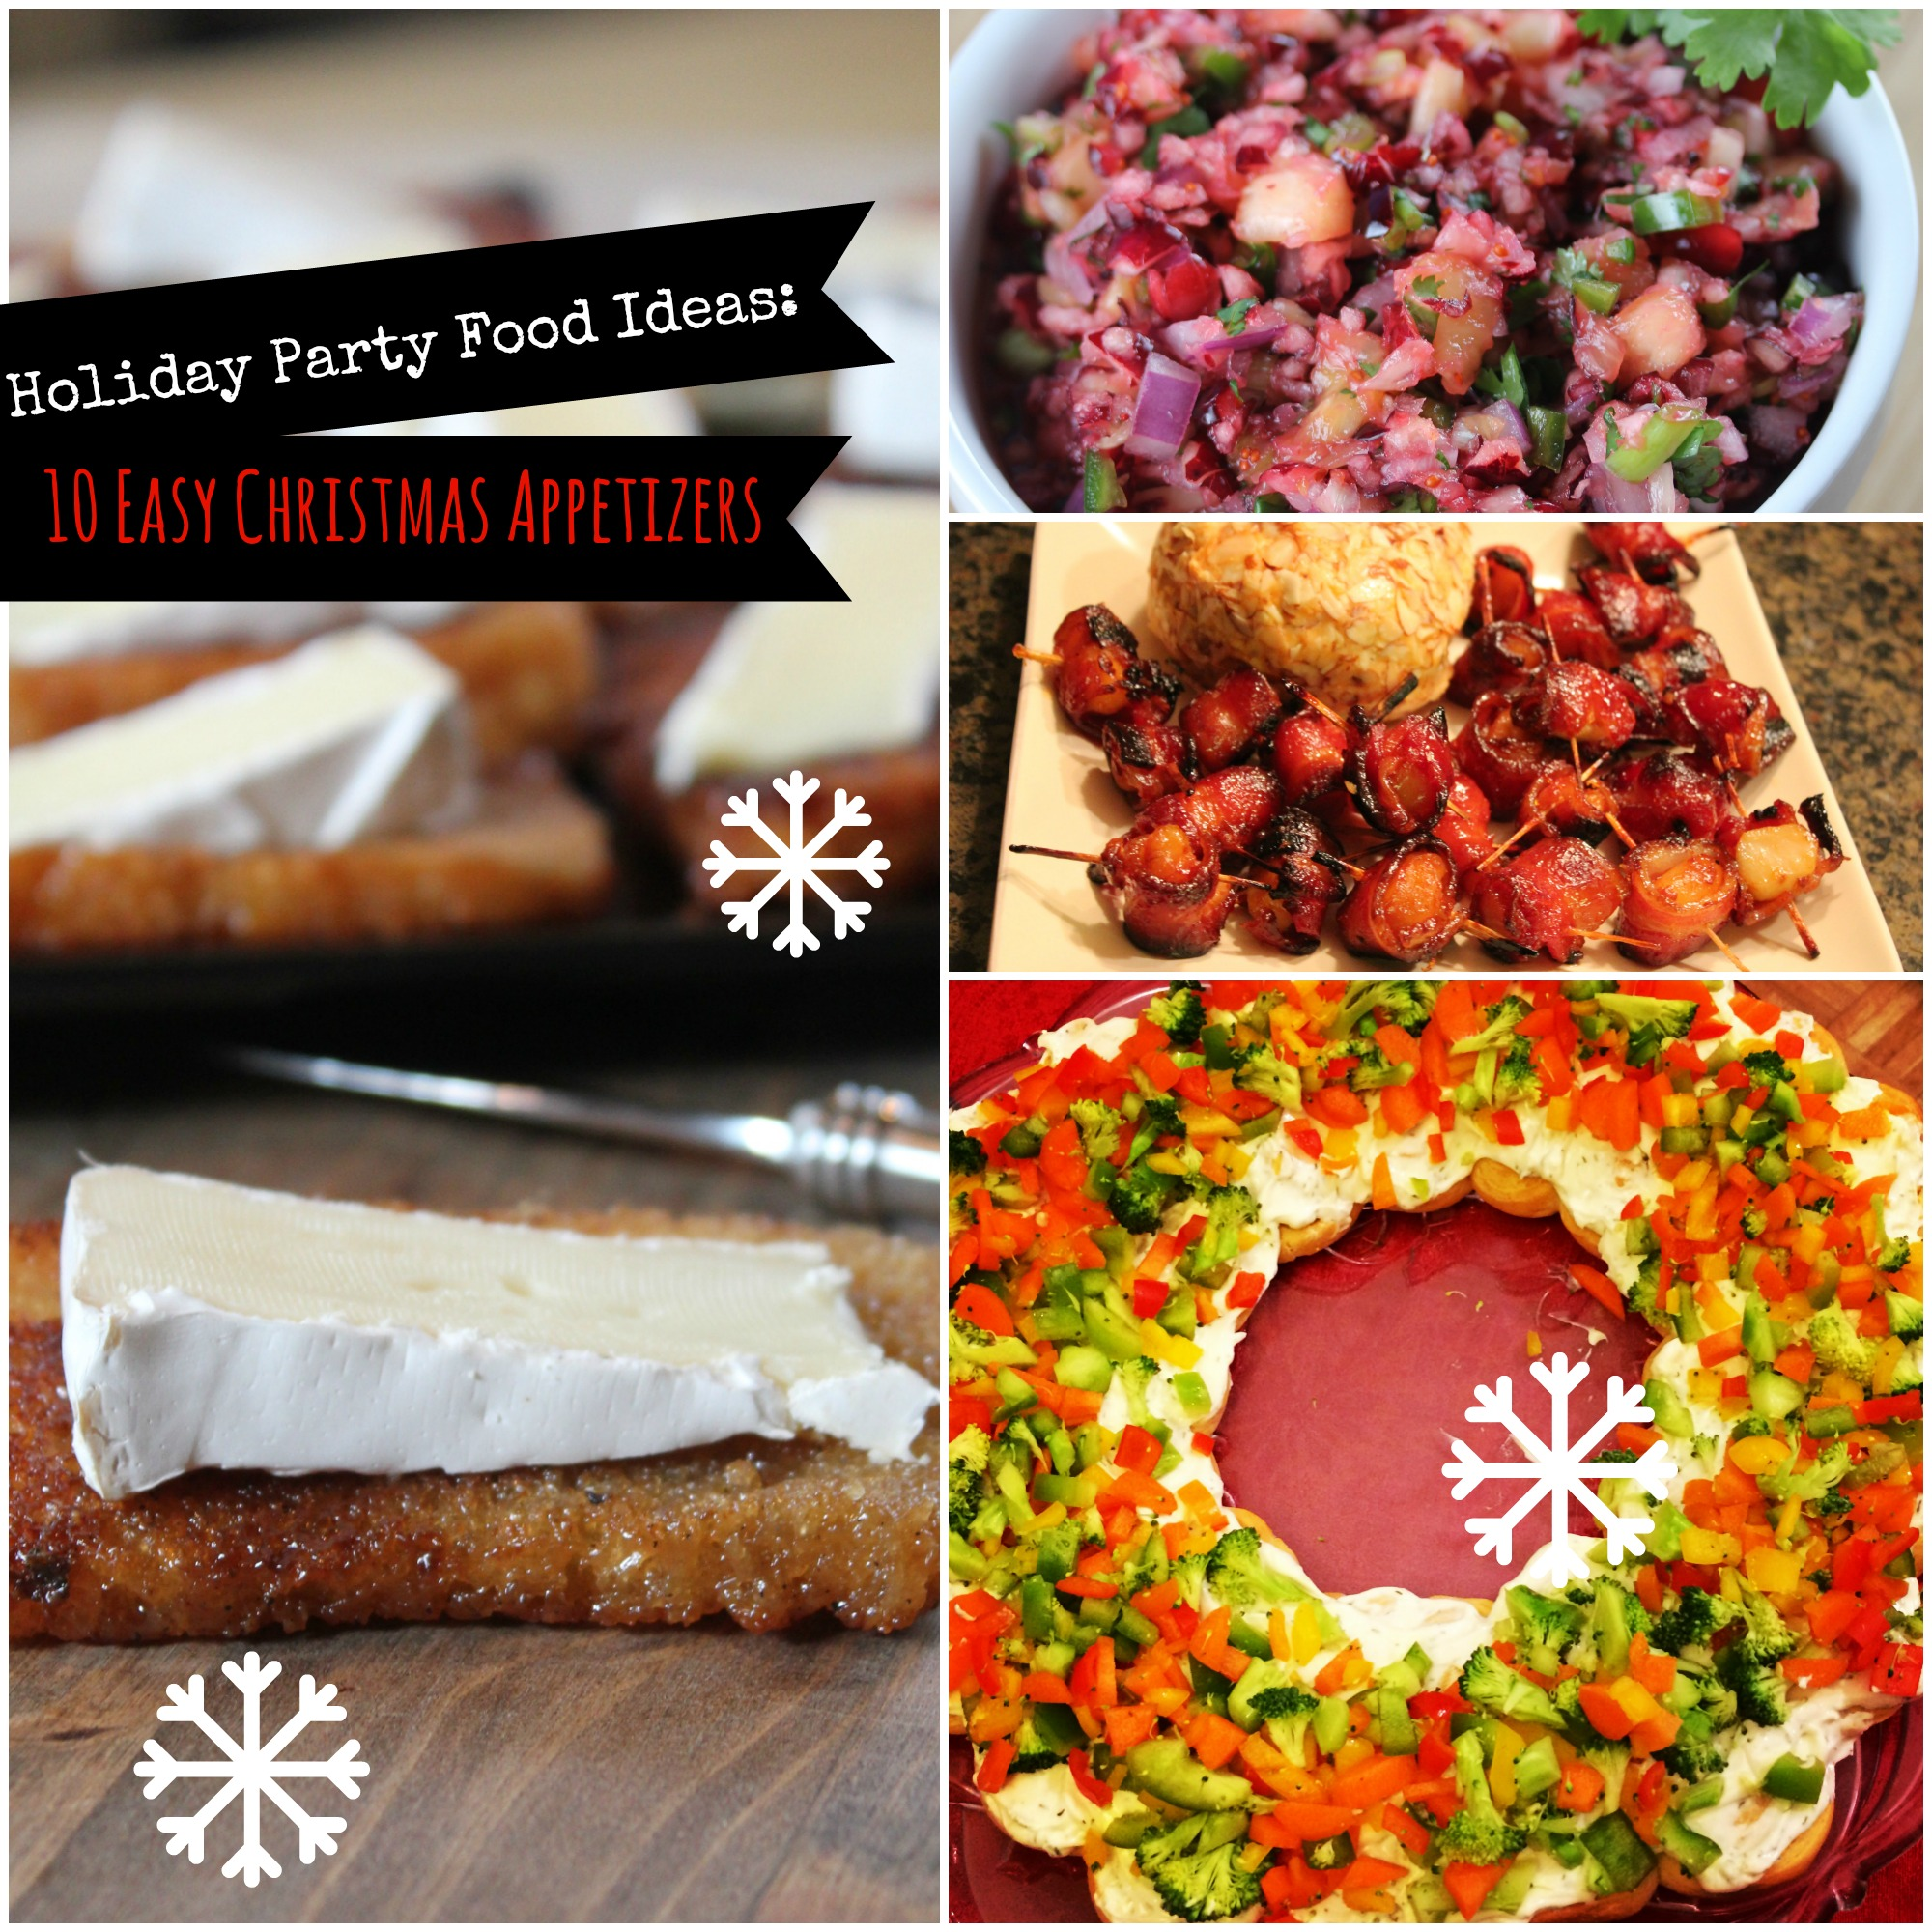 Holiday Party Food Ideas: 10 Easy Christmas Appetizers